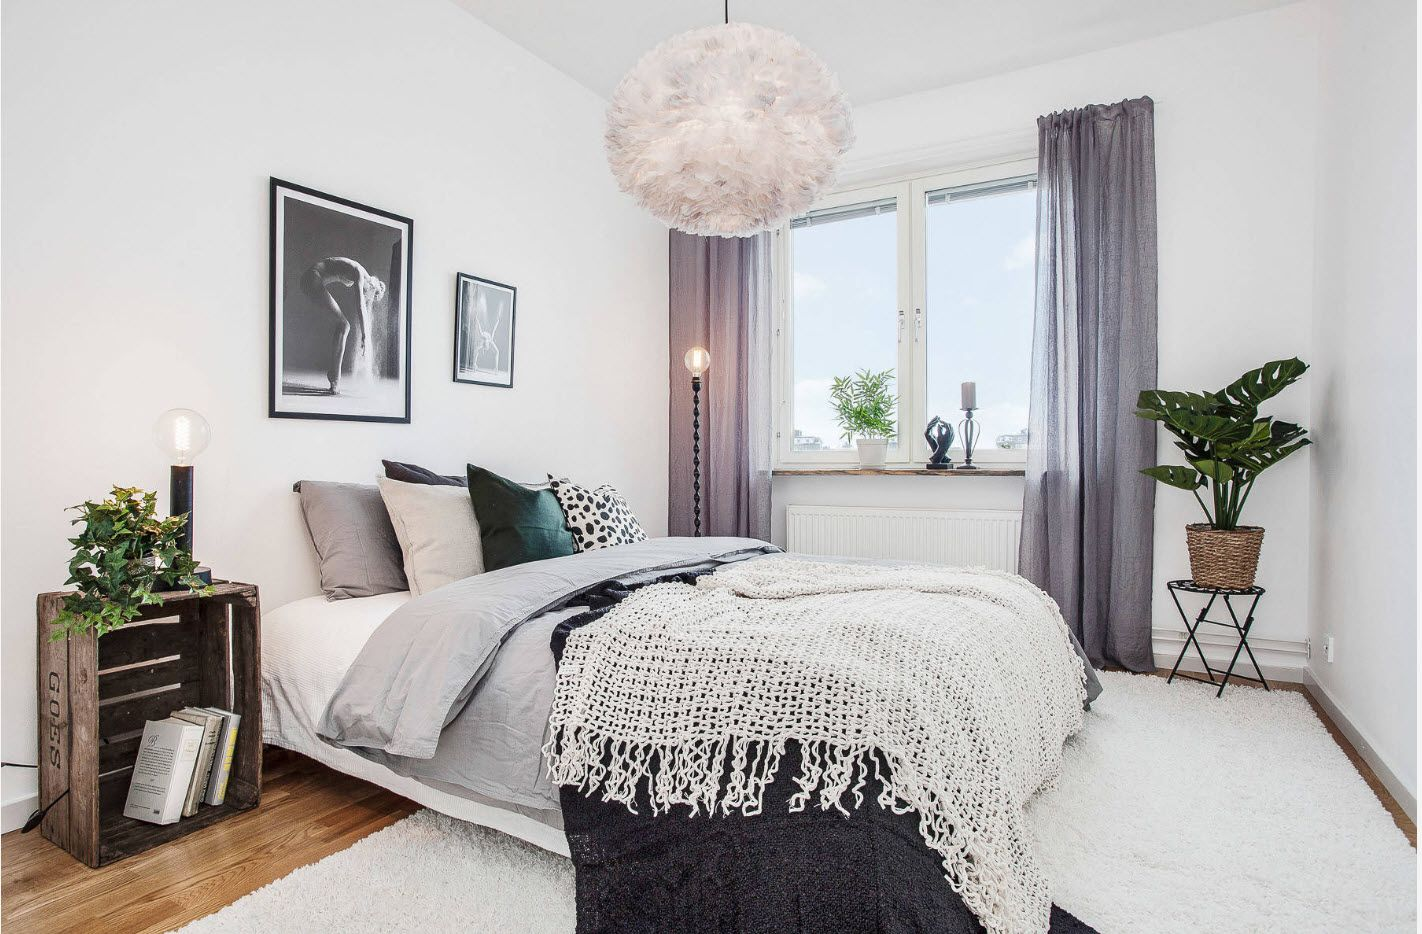 Classic interior in modern large bedroom